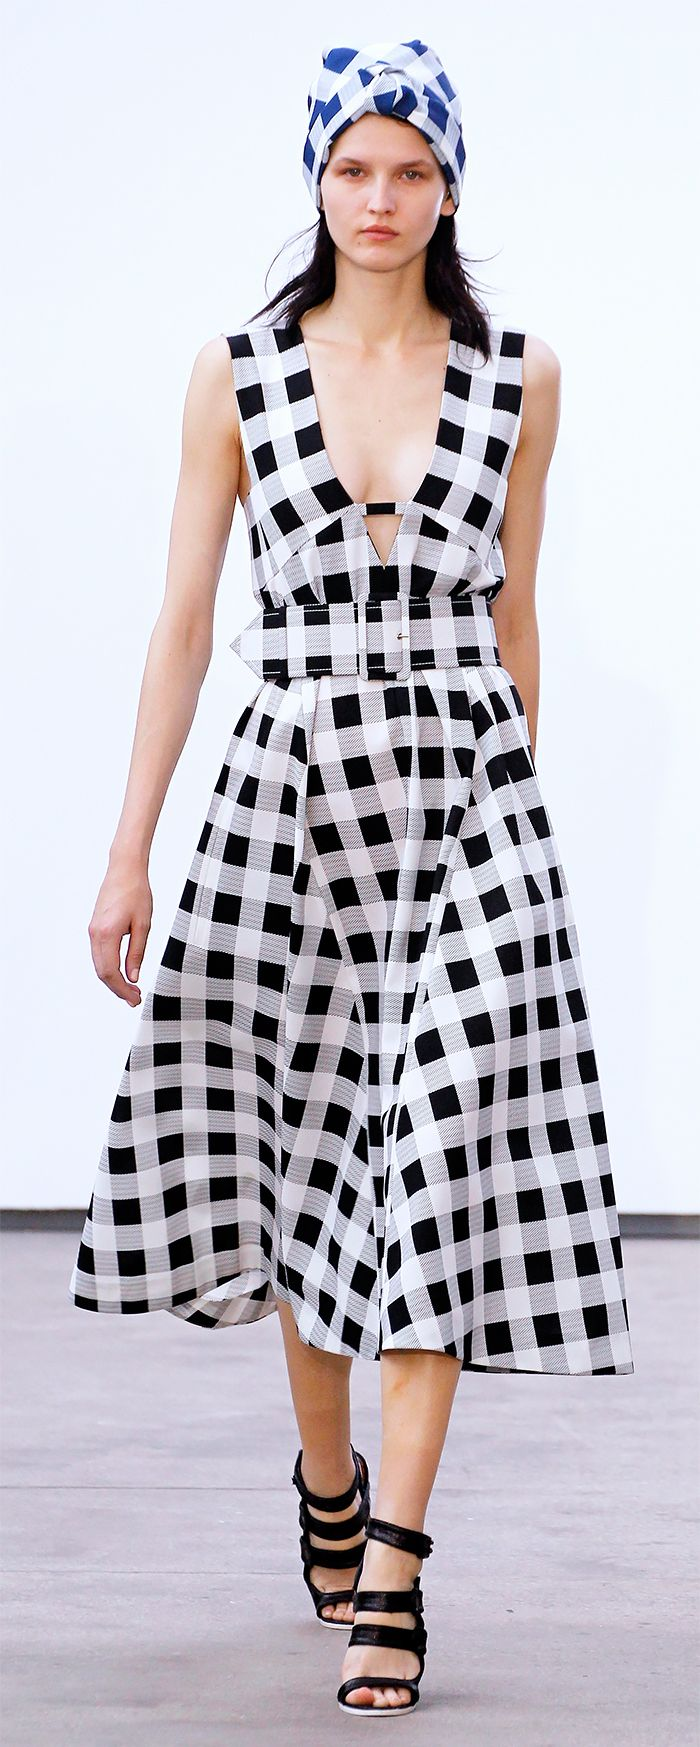 Gingham...in love with the dress